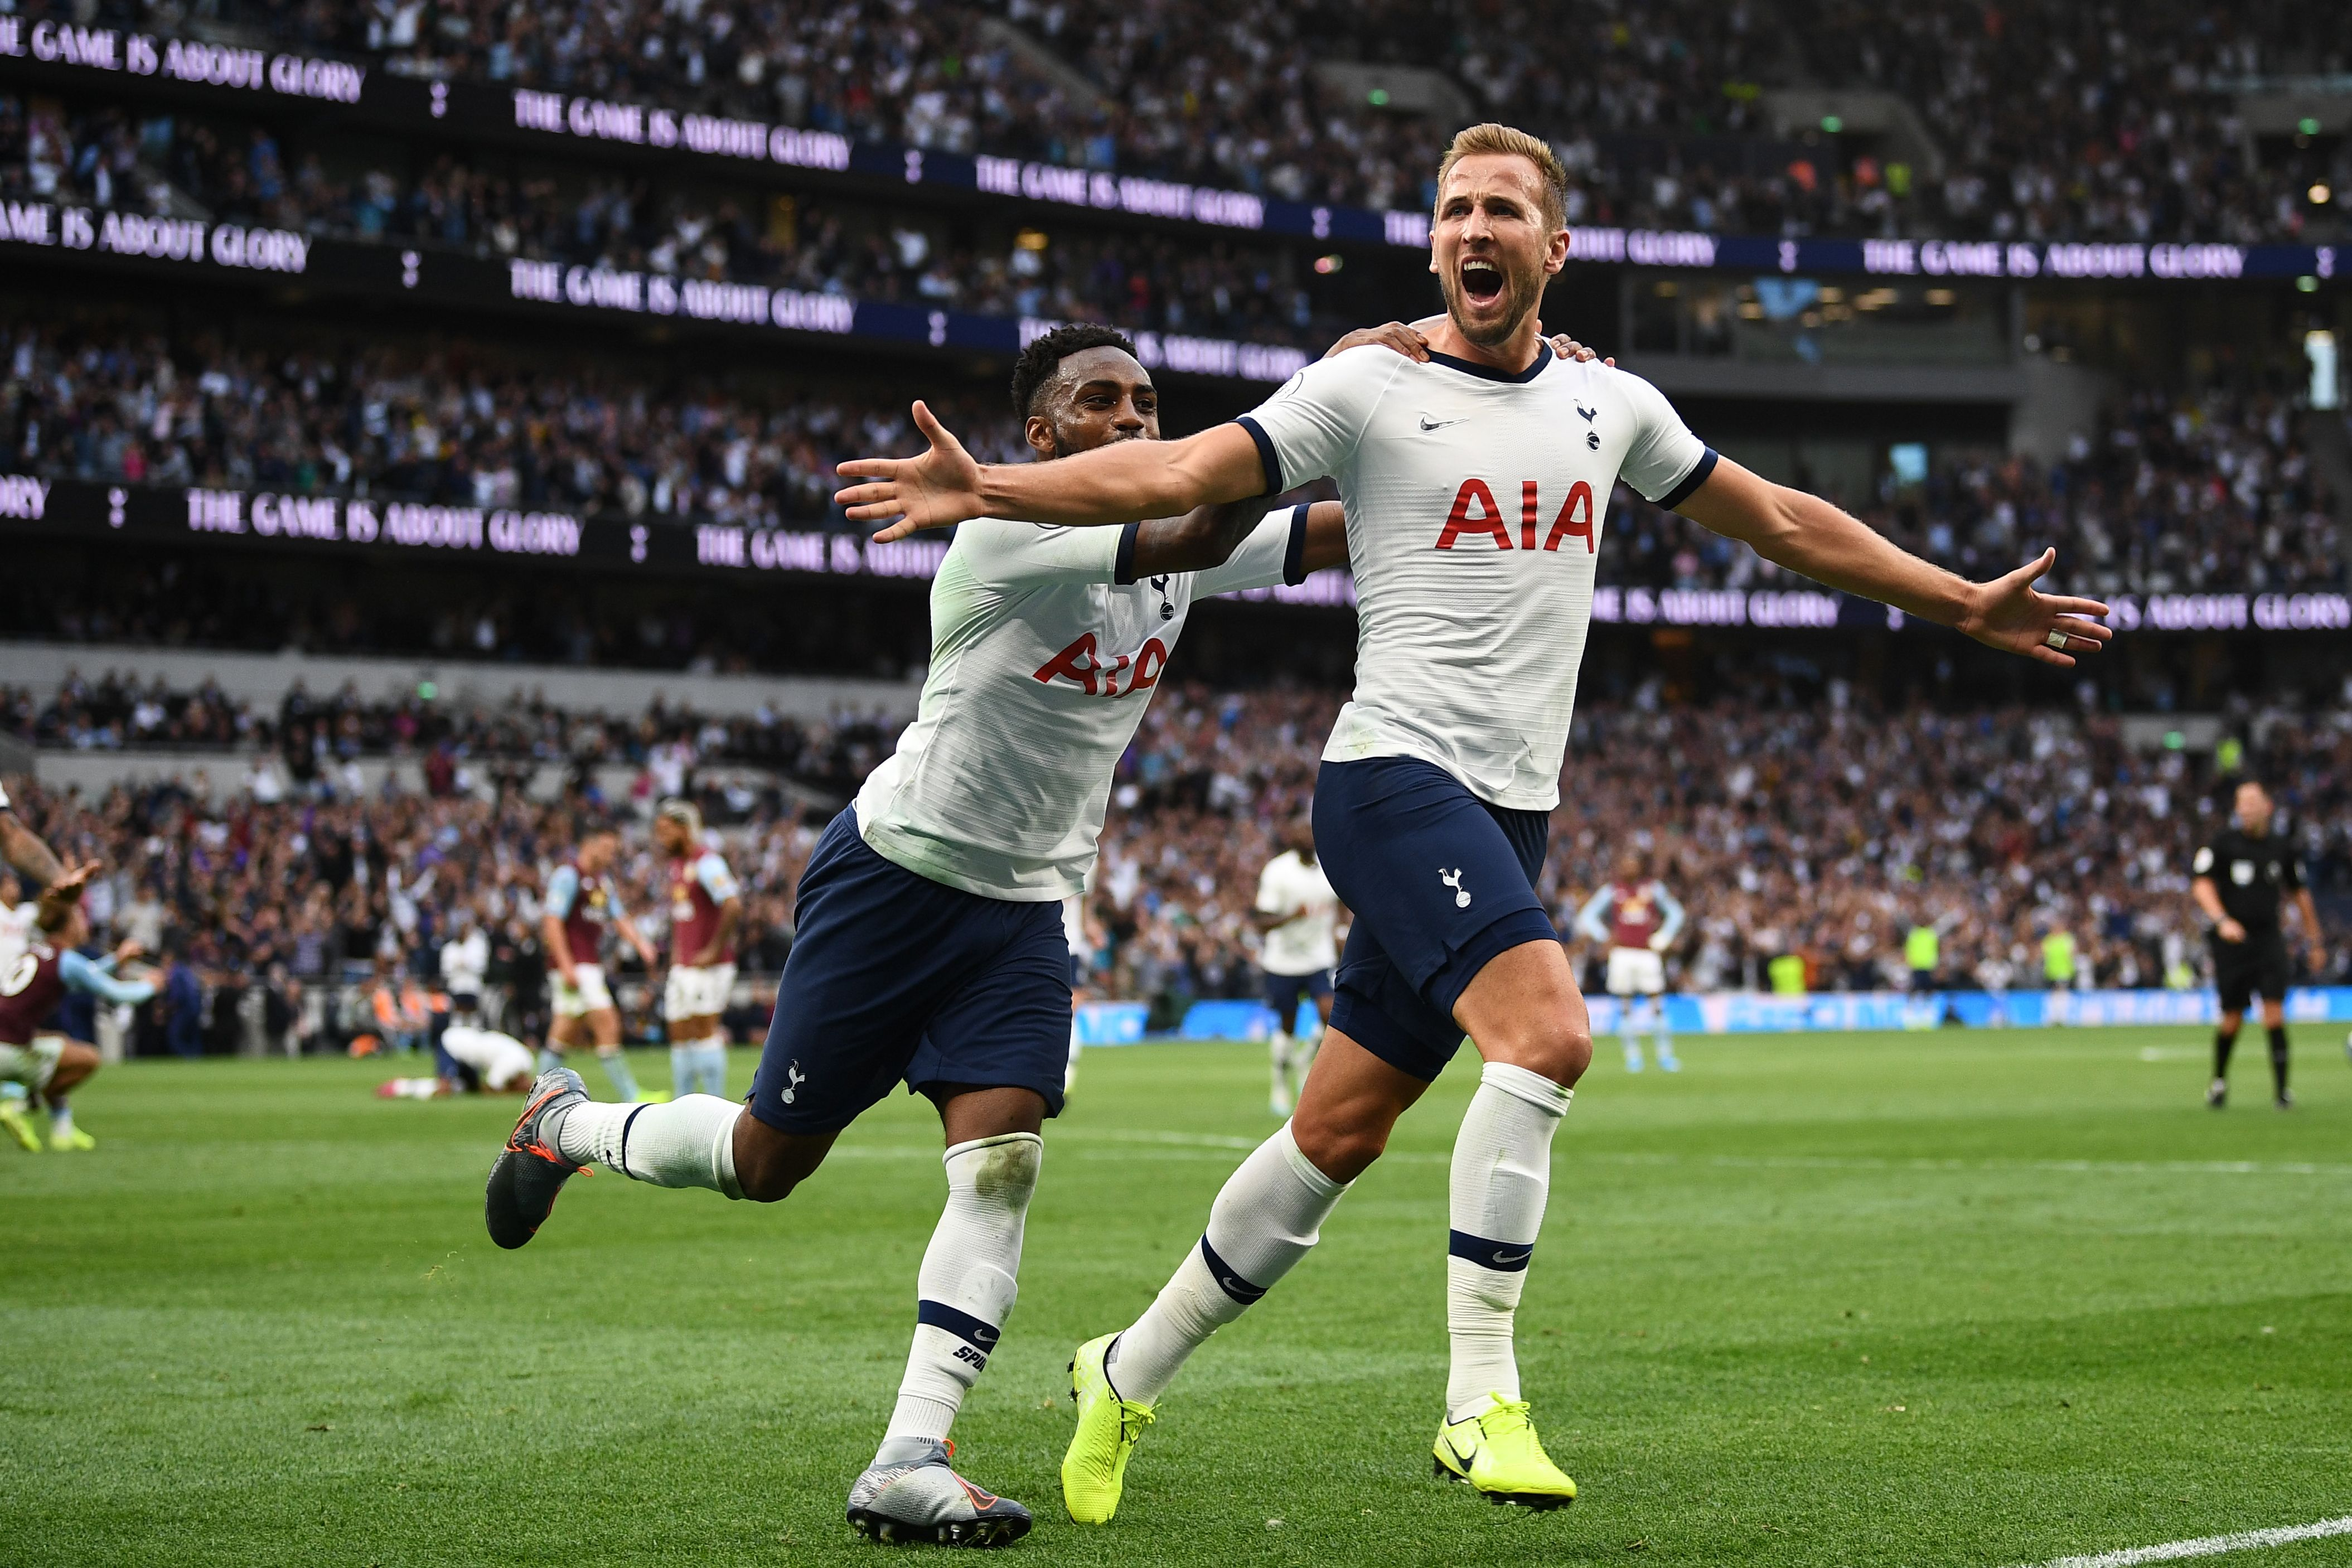 Amazon Builds All Or Nothing Franchise With Tottenham Hotspur Tbi Vision